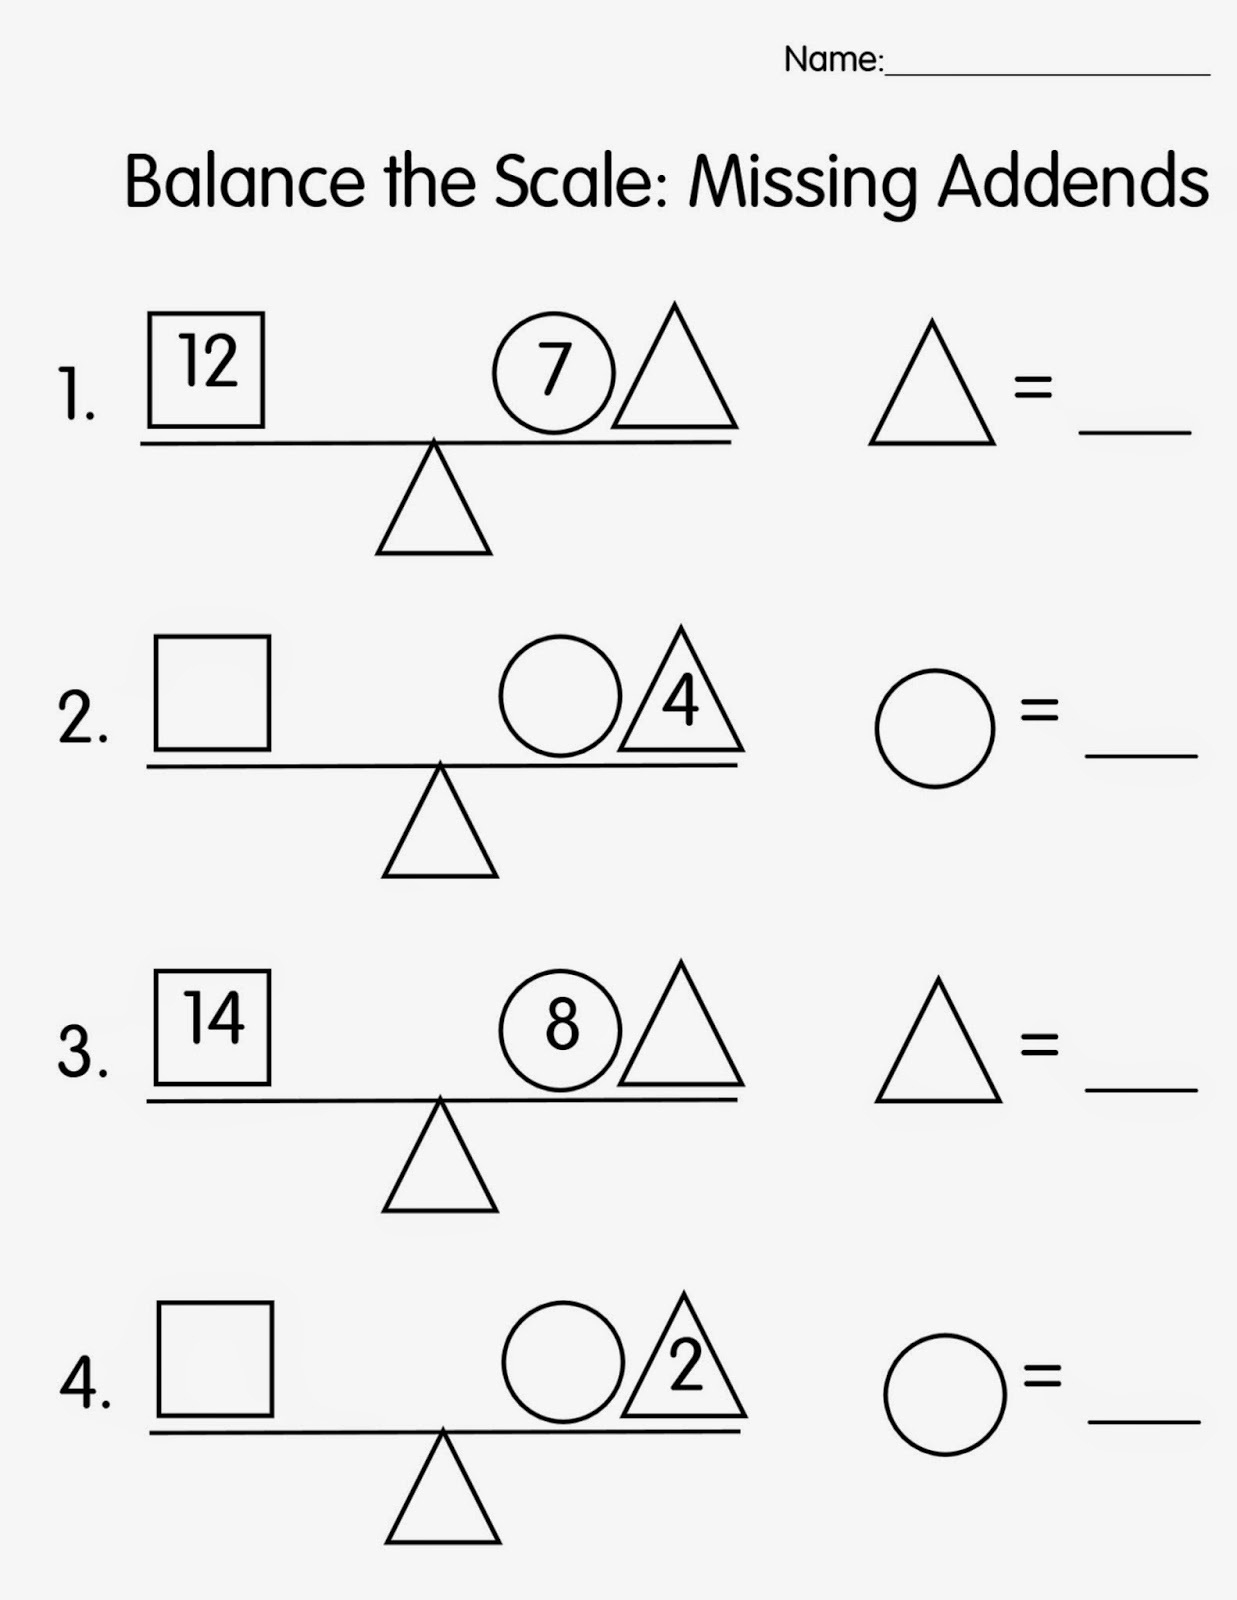 Balance Scale Worksheets For Children